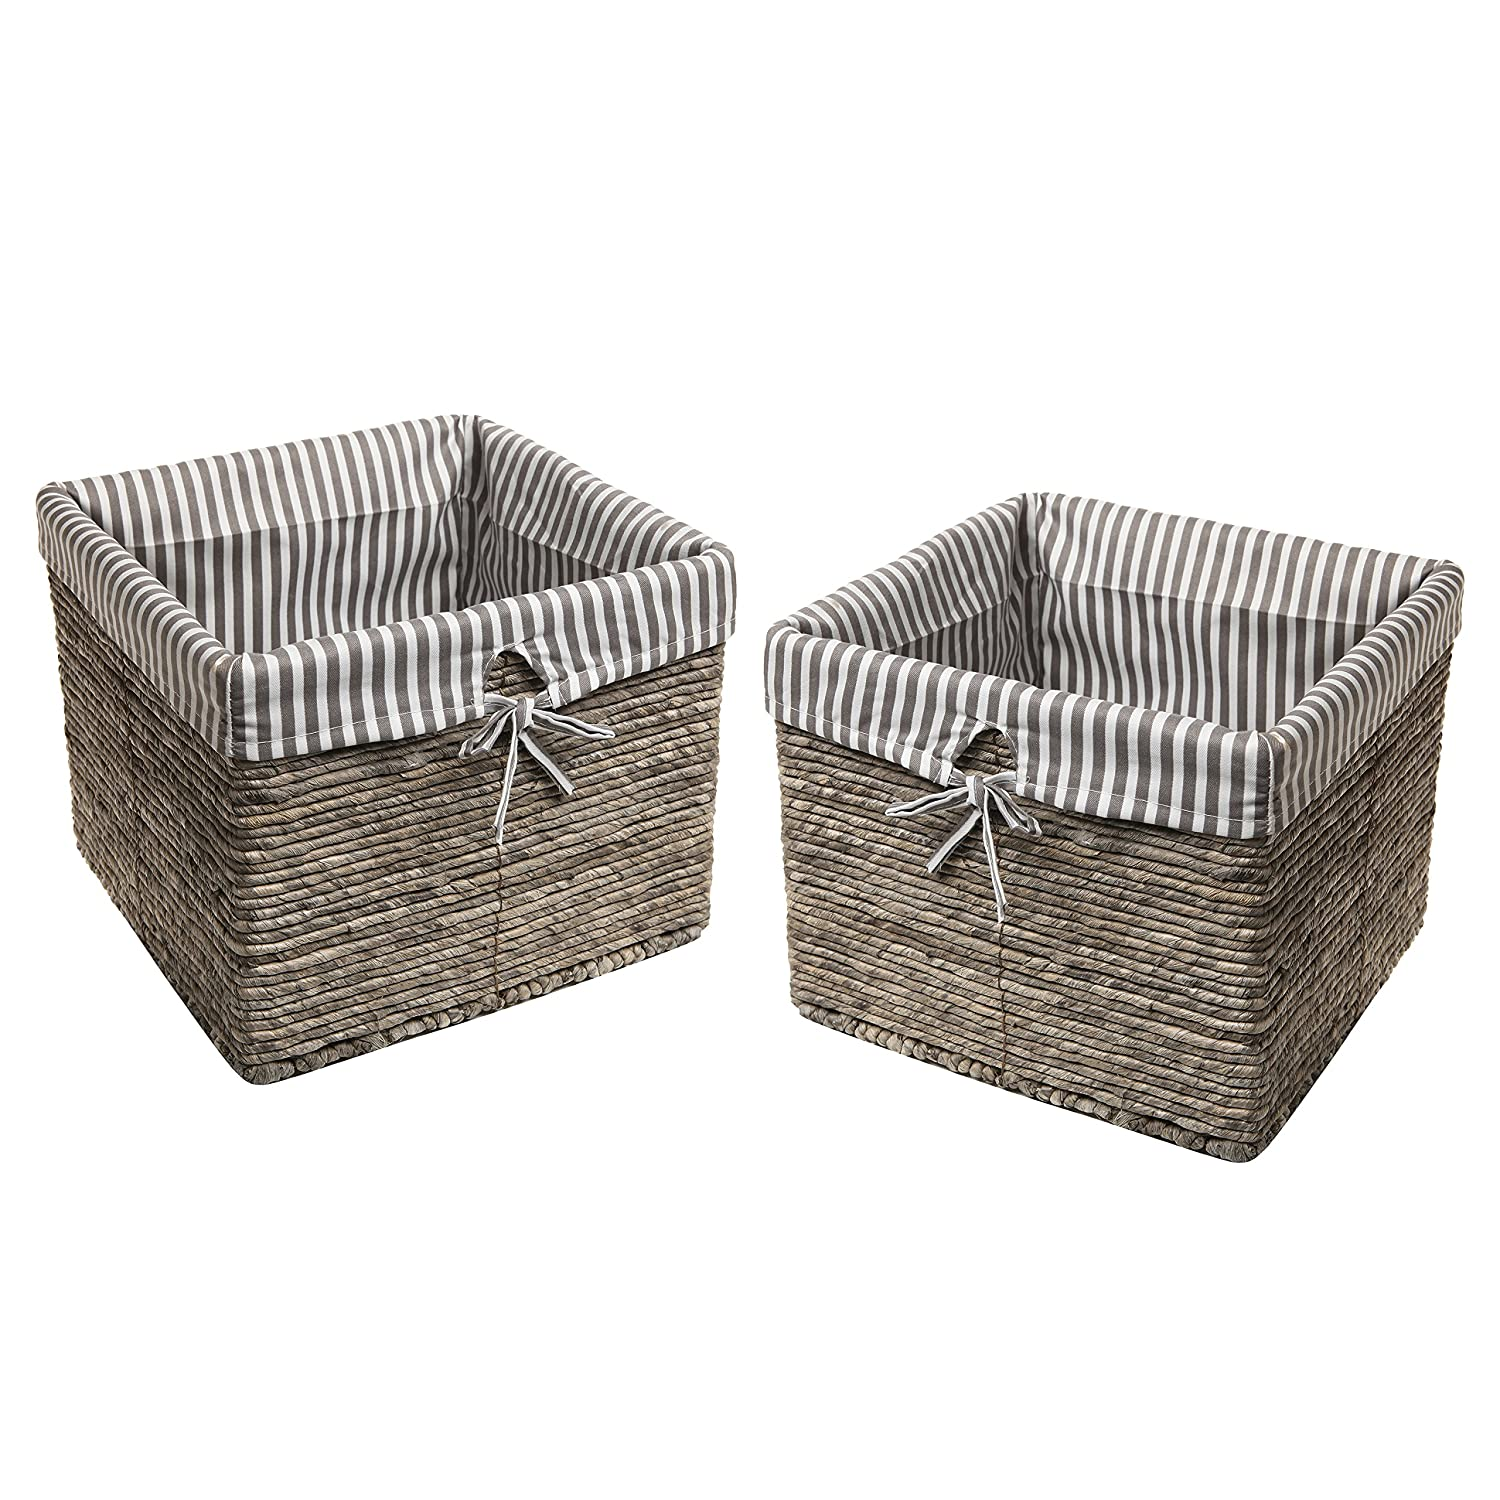 2 Gray Rattan Woven Stripe Fabric Lined Laundry / Magazine / Home Storage Basket